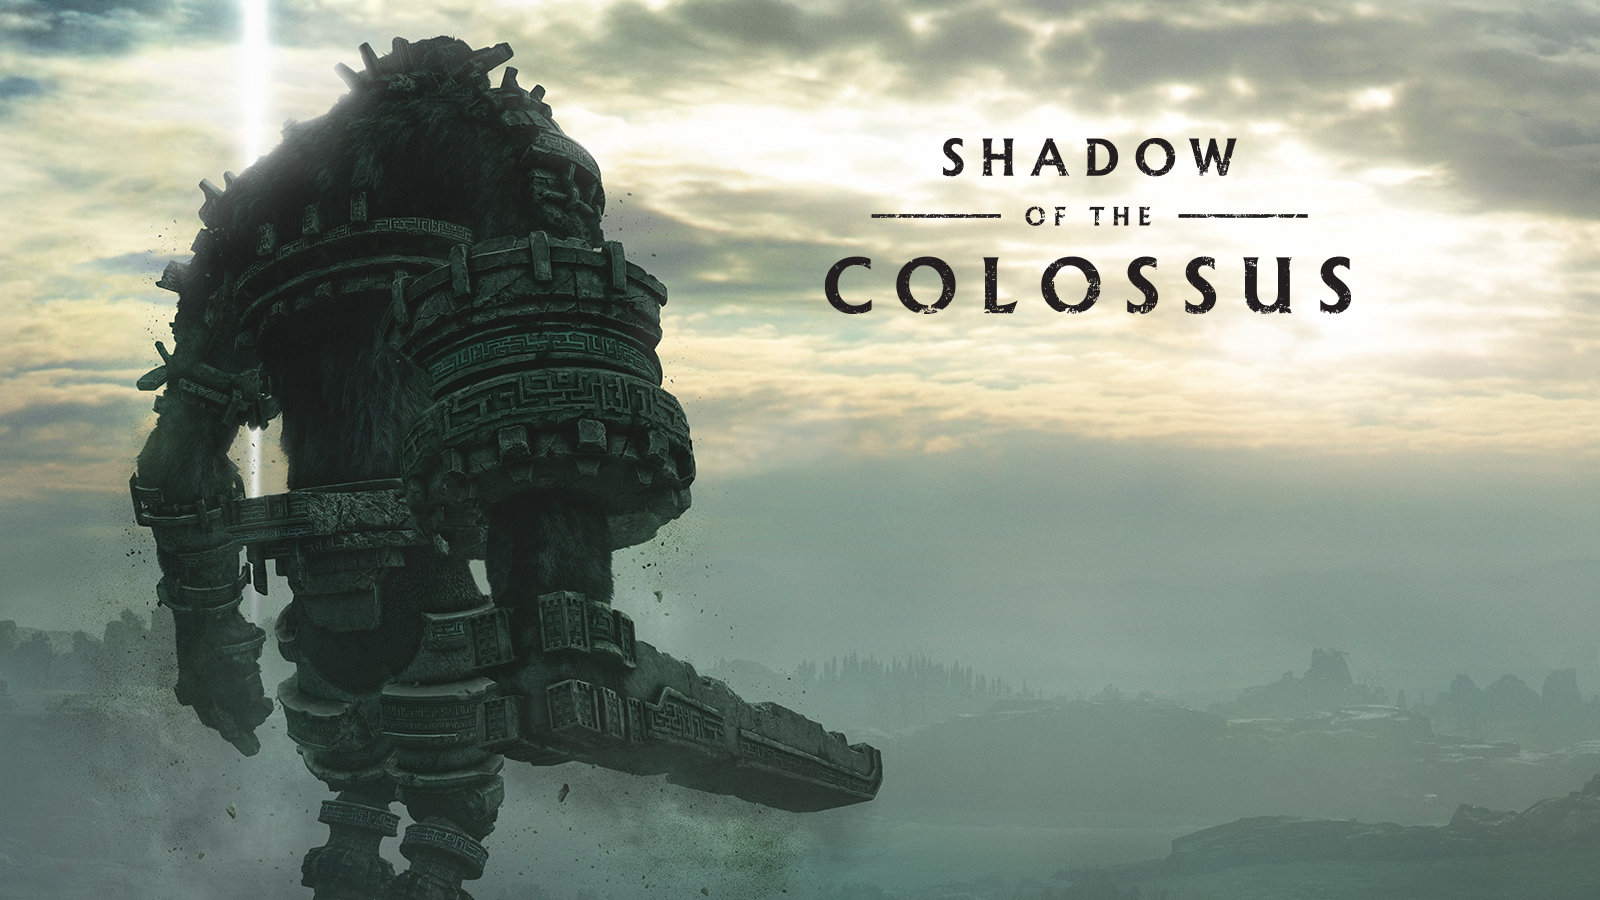 shadow-of-the-colossus-listing-thumb-01-